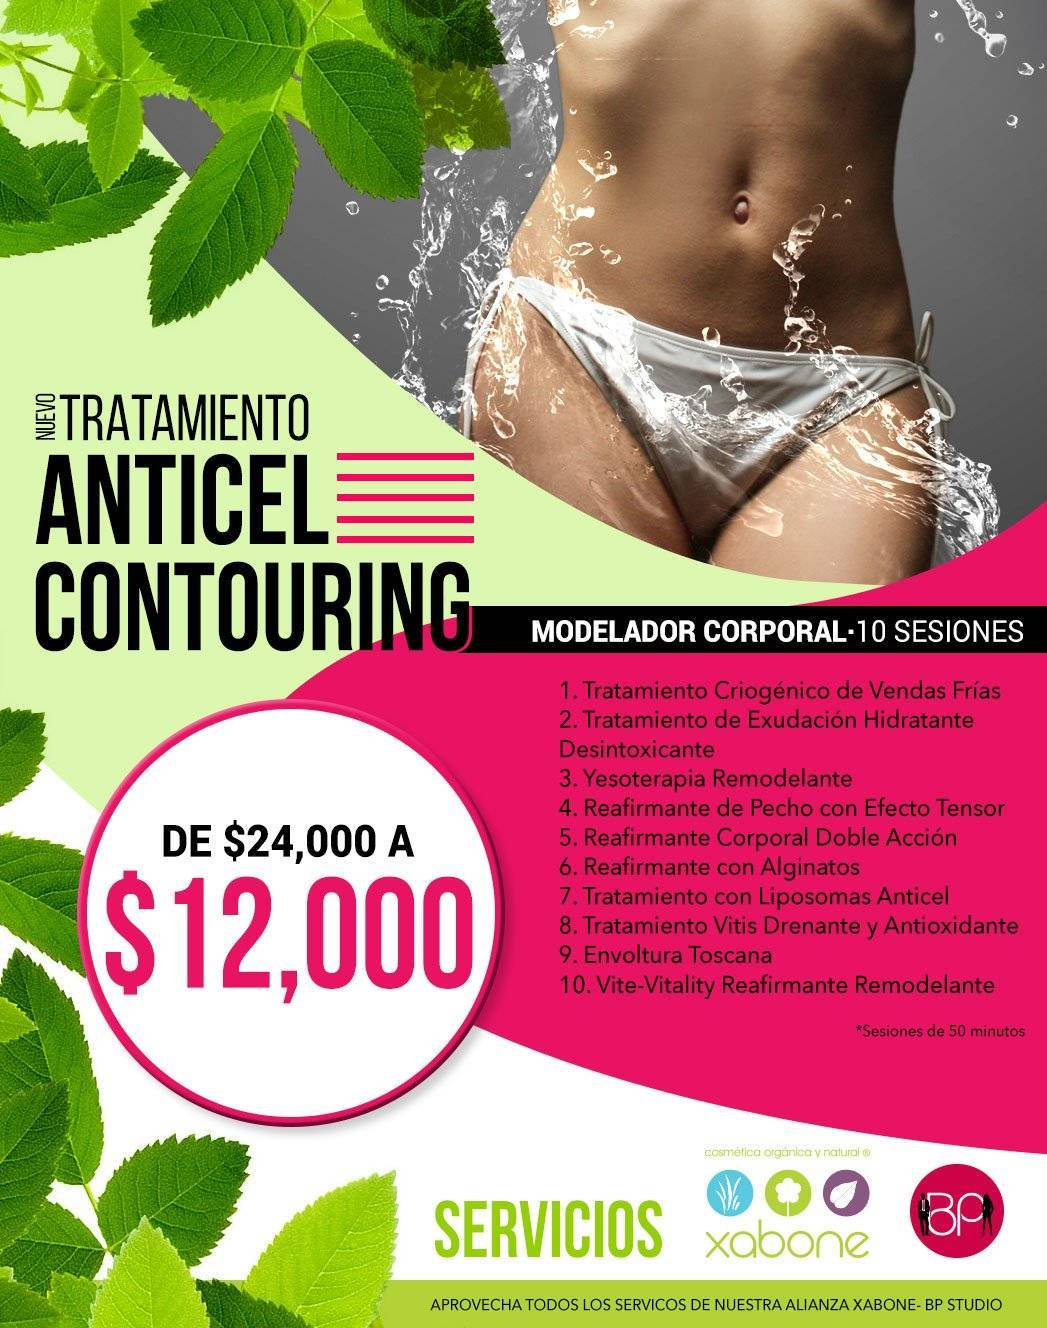 tratamiento anticel-contouring bp studio gift card